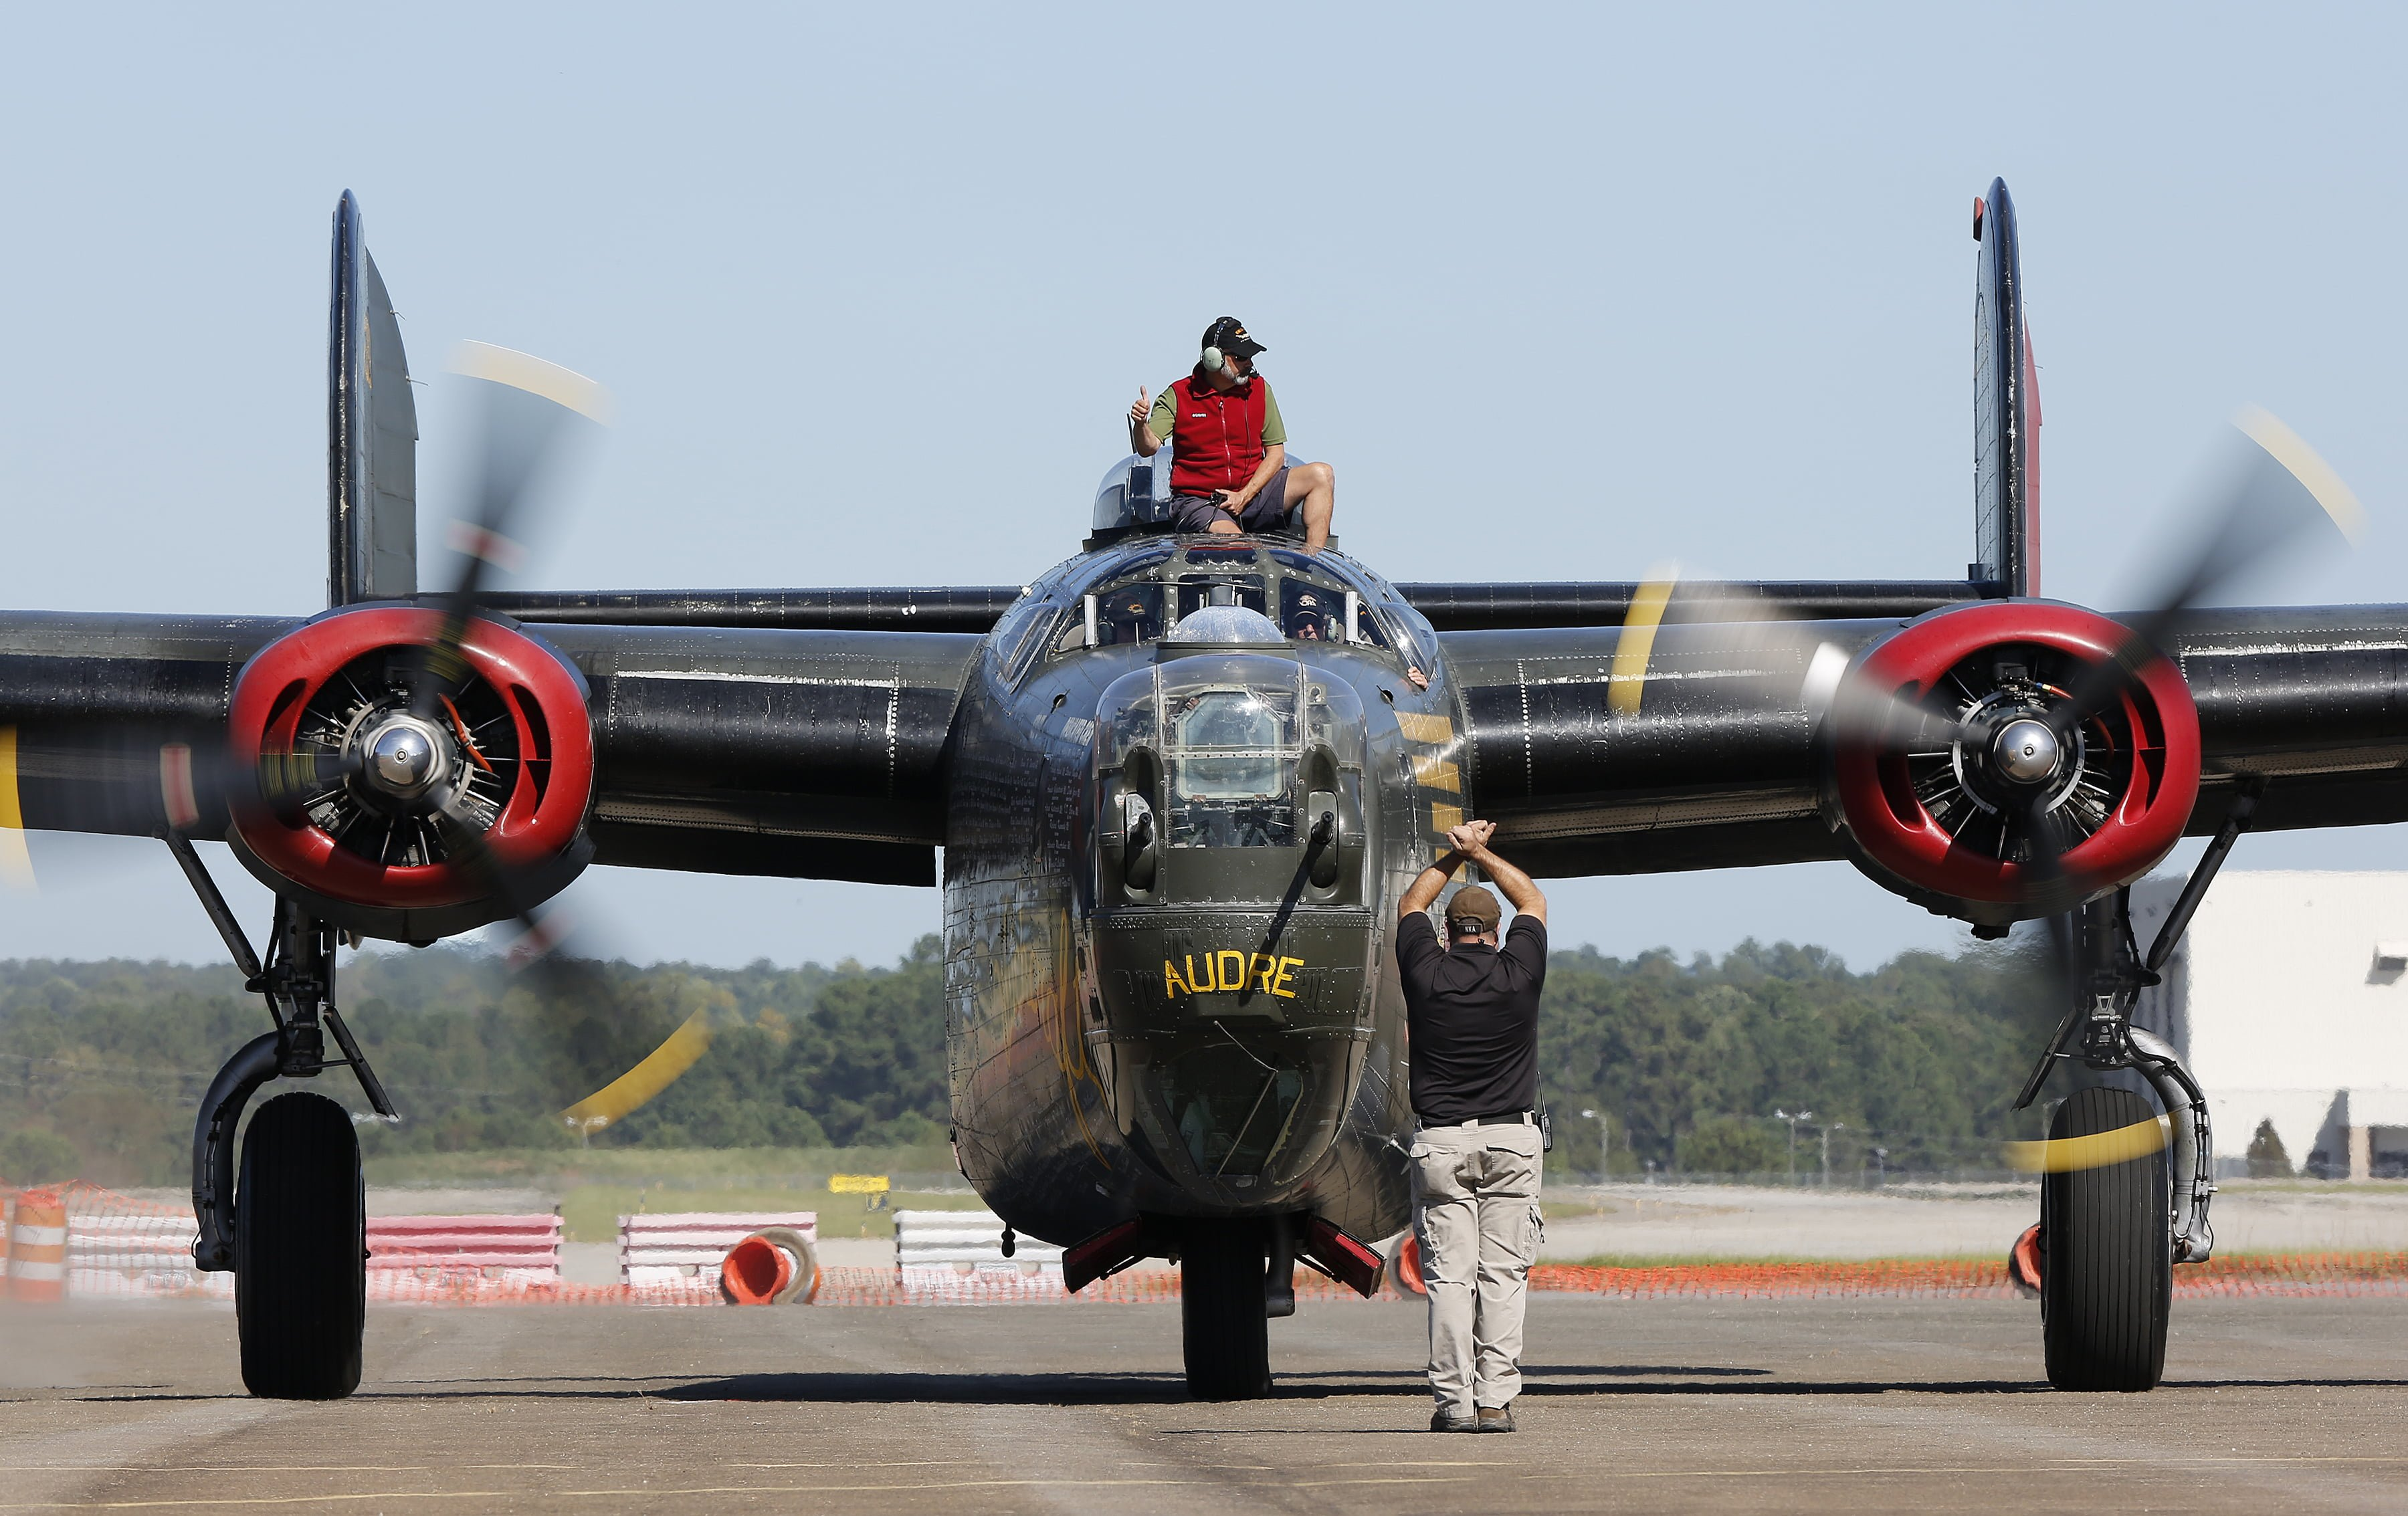 Flight engineer Stephen Arnold, of Seattle, gives a thumbs up as the world's only flying B-24J Liberator comes in for landing at Raleigh-Durham International Airport during the Wings of Freedom Tour, October 19, 2017. Hosted by the Collings Foundation, Wings of Freedom visits more than 100 cities a year to show off working pieces of American war history as well as to educate people about the veterans of WWII. The tour will be in Burlington, NC until 12 pm on Oct. 25 and then move to Statesville, NC through Oct. 27. (Eamon Queeney / North State Journal)